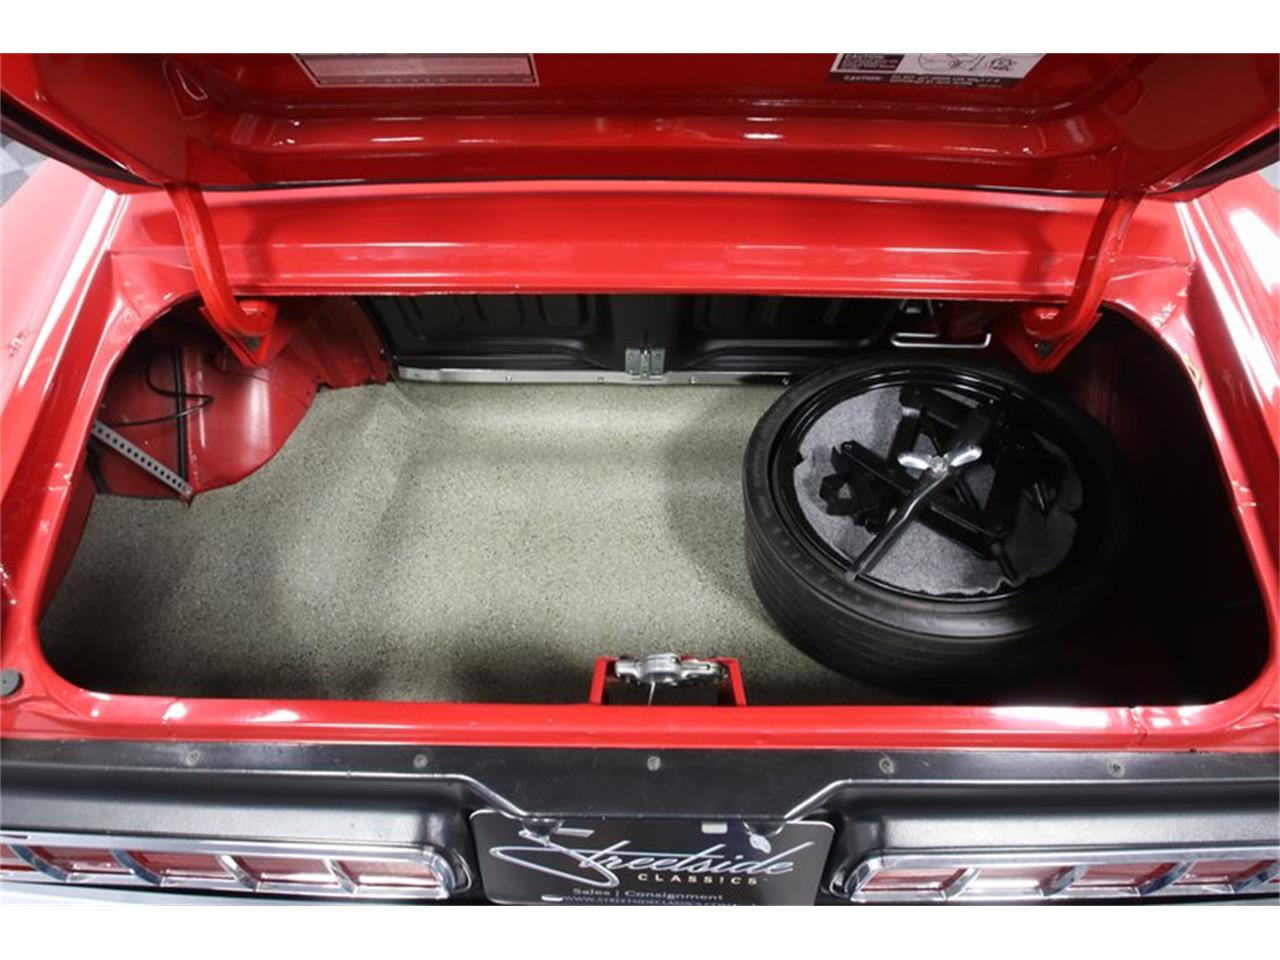 Large Picture of Classic '69 Mustang located in North Carolina Offered by Streetside Classics - Charlotte - PHUN